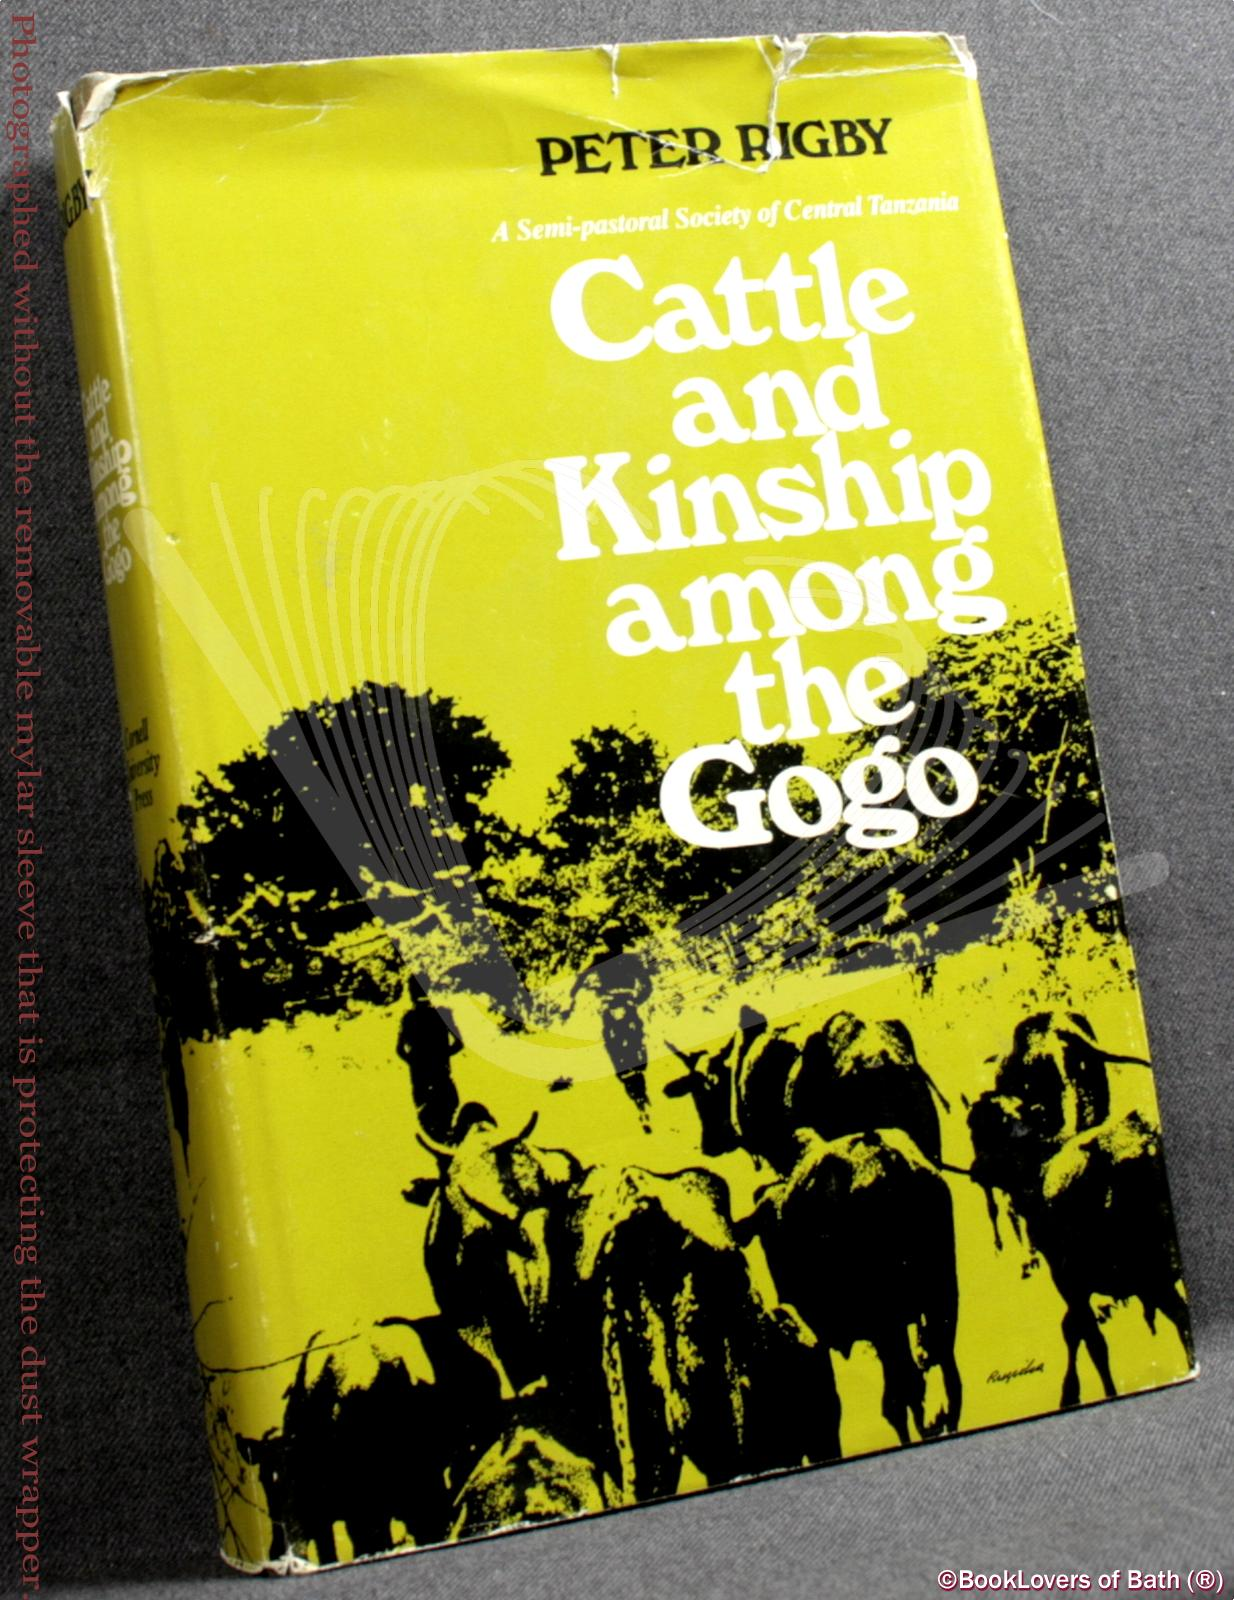 Cattle and Kinship Among the Gogo: A Semi-pastoral Society of Central Tanzania - Peter Rigby